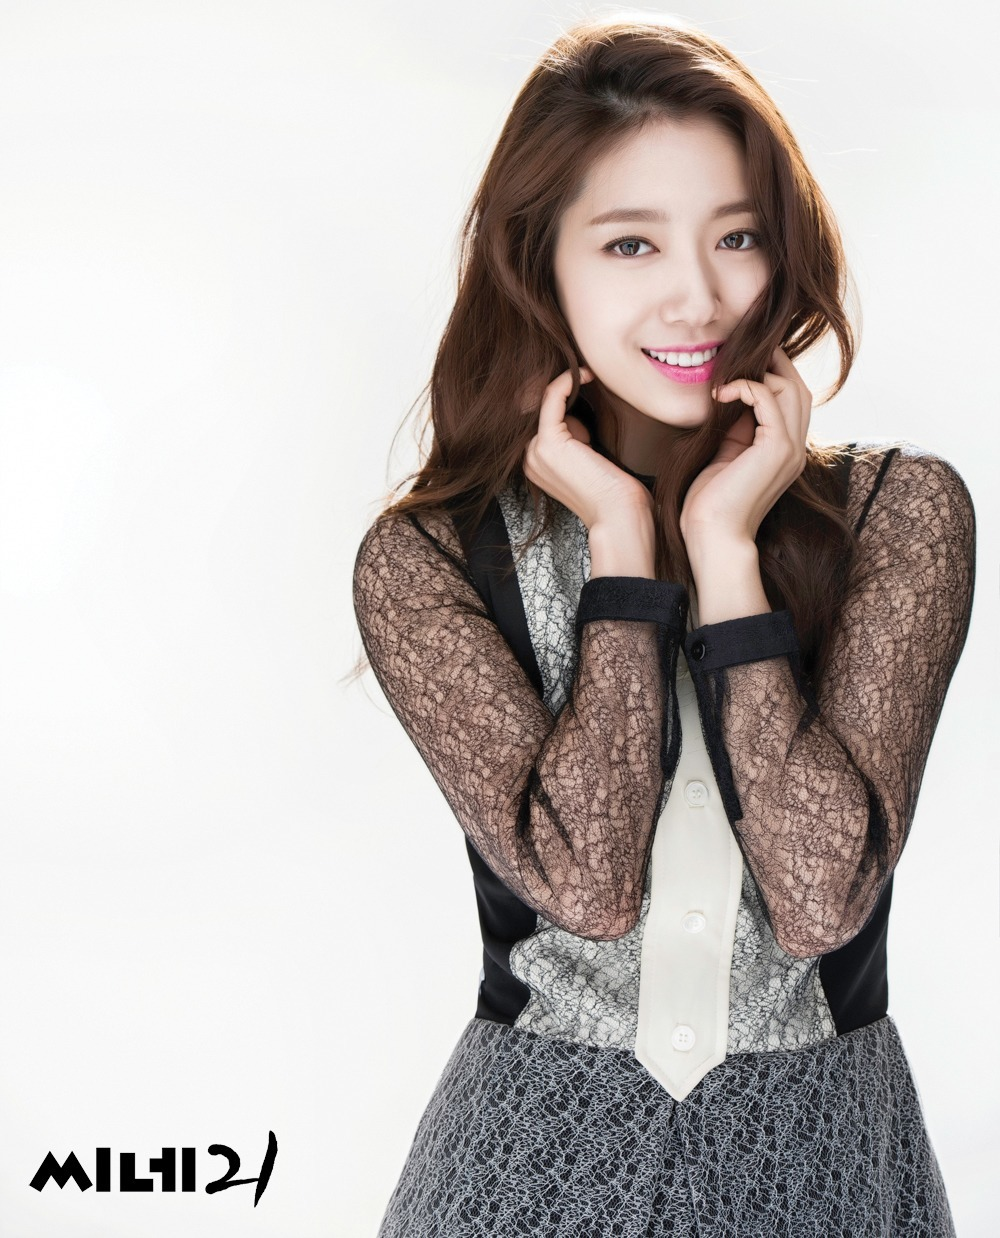 Park Shin Hye for Cine21